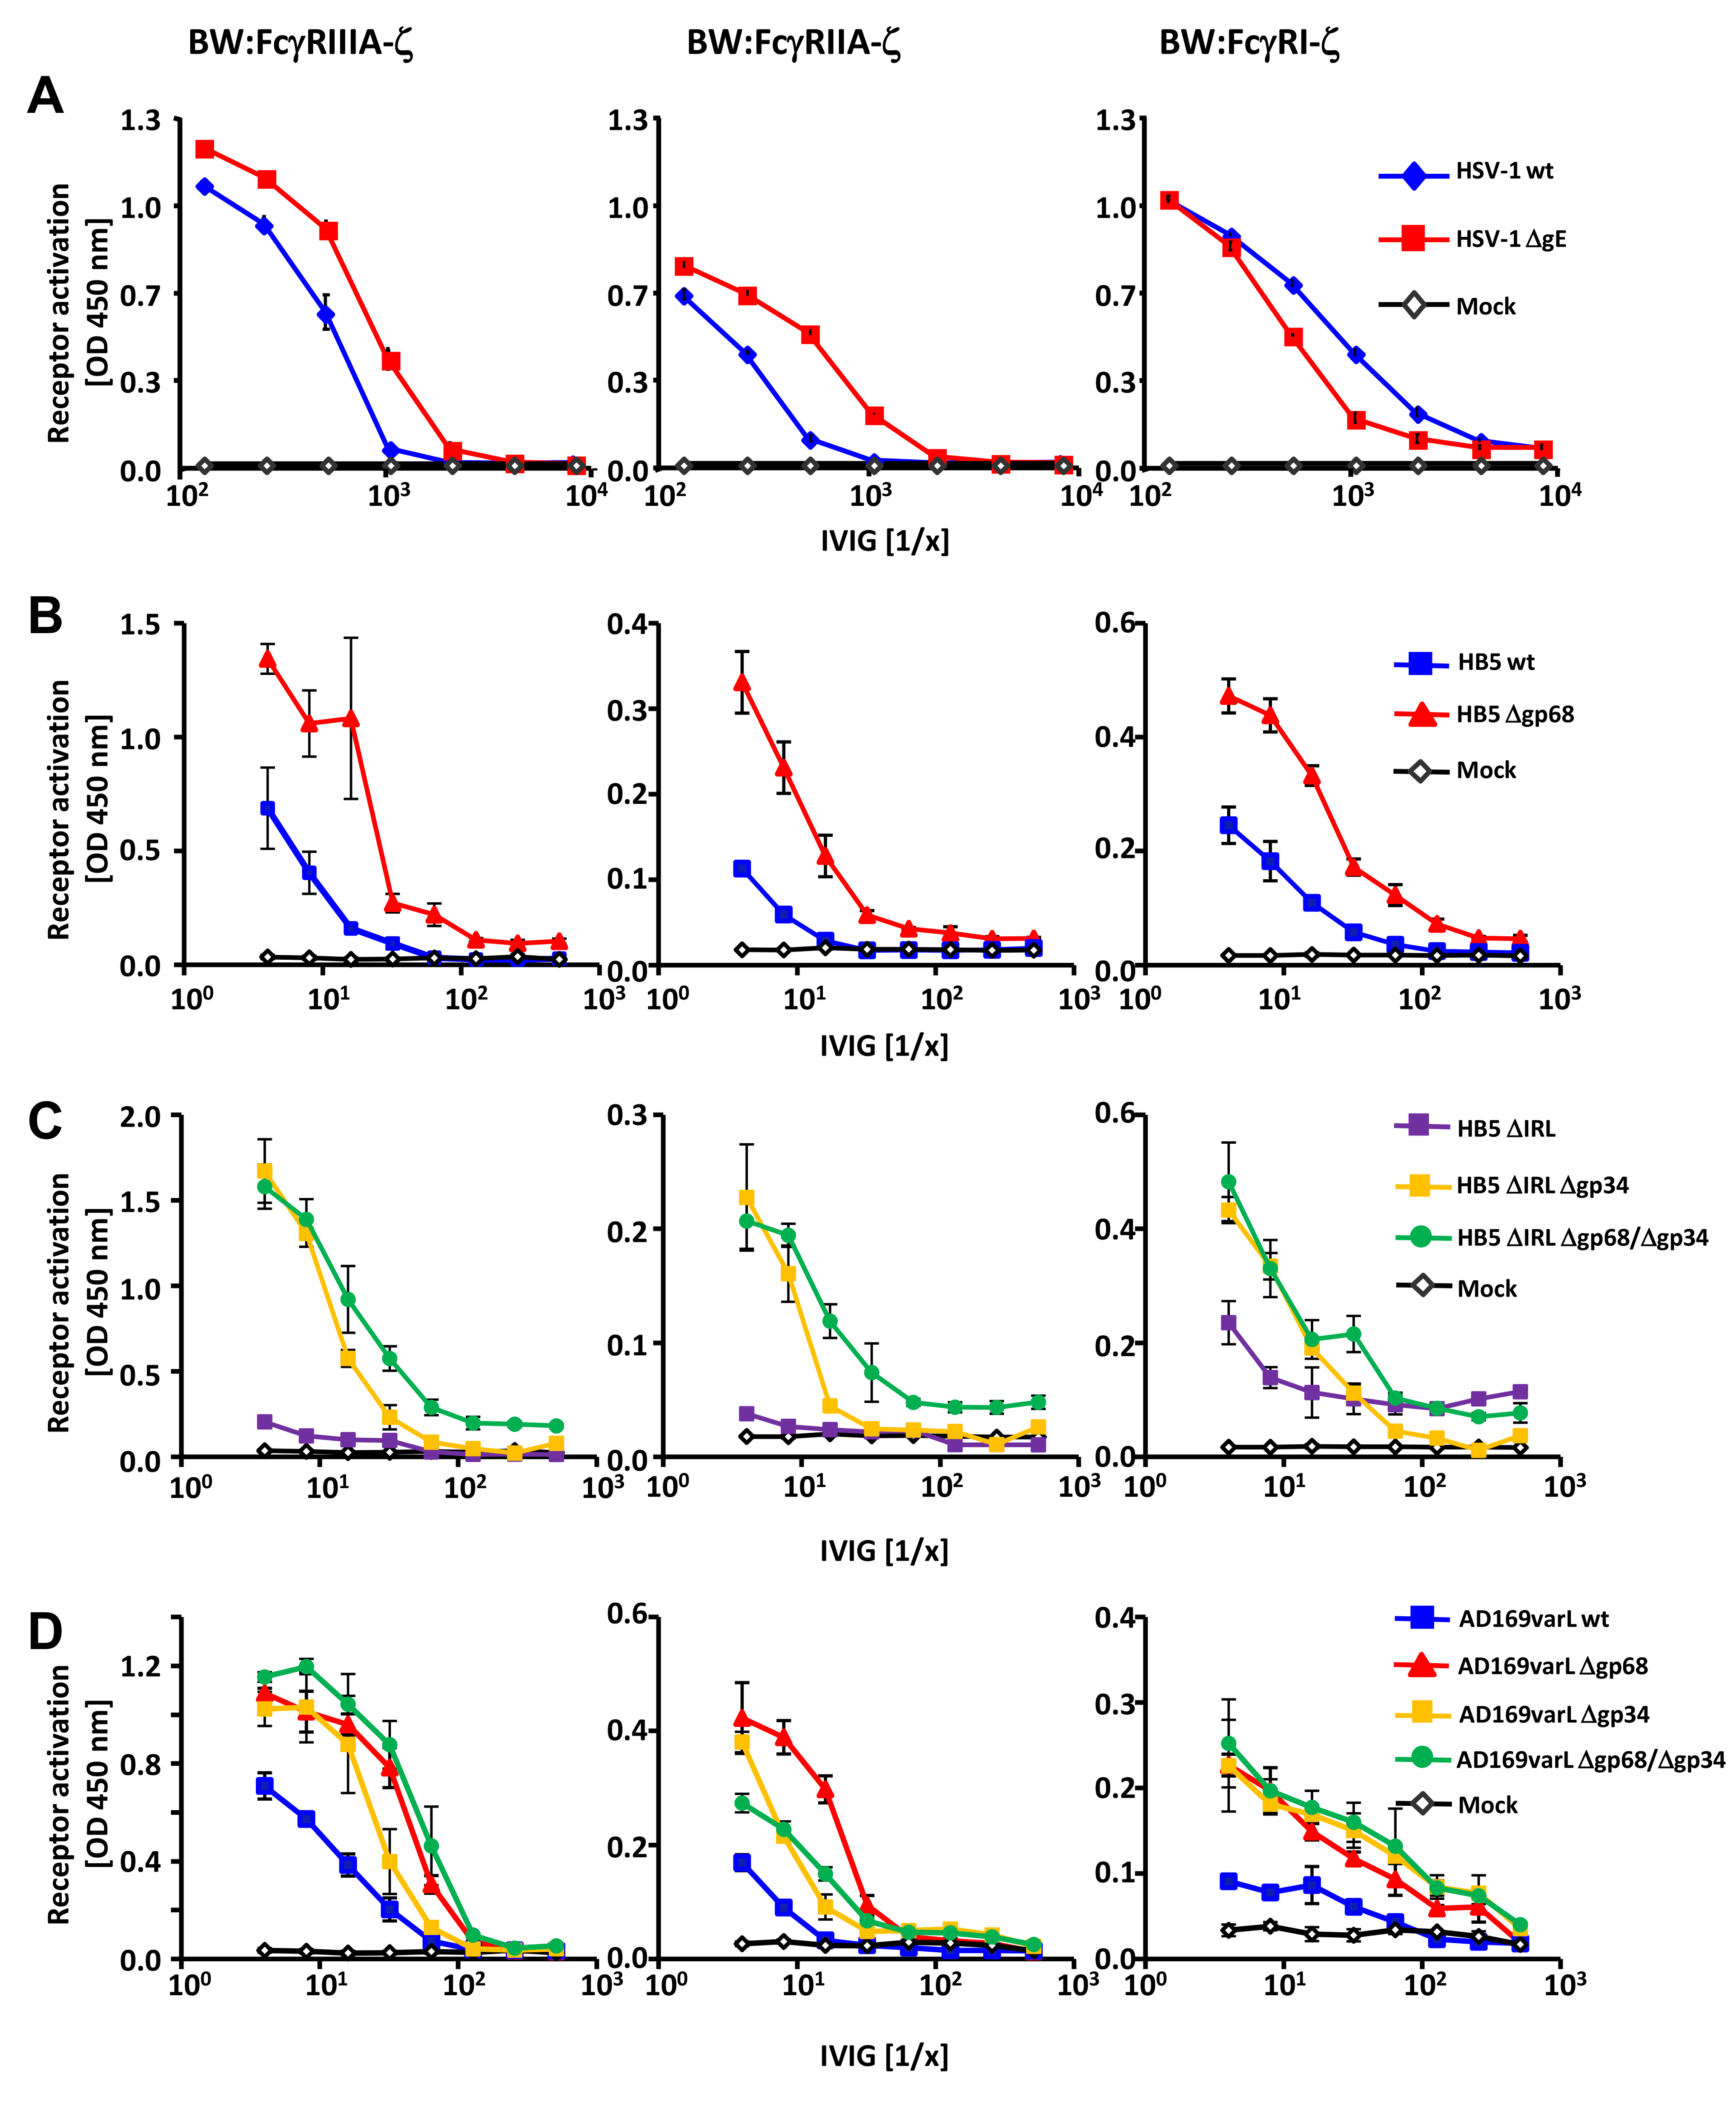 HSV-1 gE, HCMV gp68 and HCMV gp34 interfere with host FcγR activation upon opsonization of cells with polyclonal immune IgG.